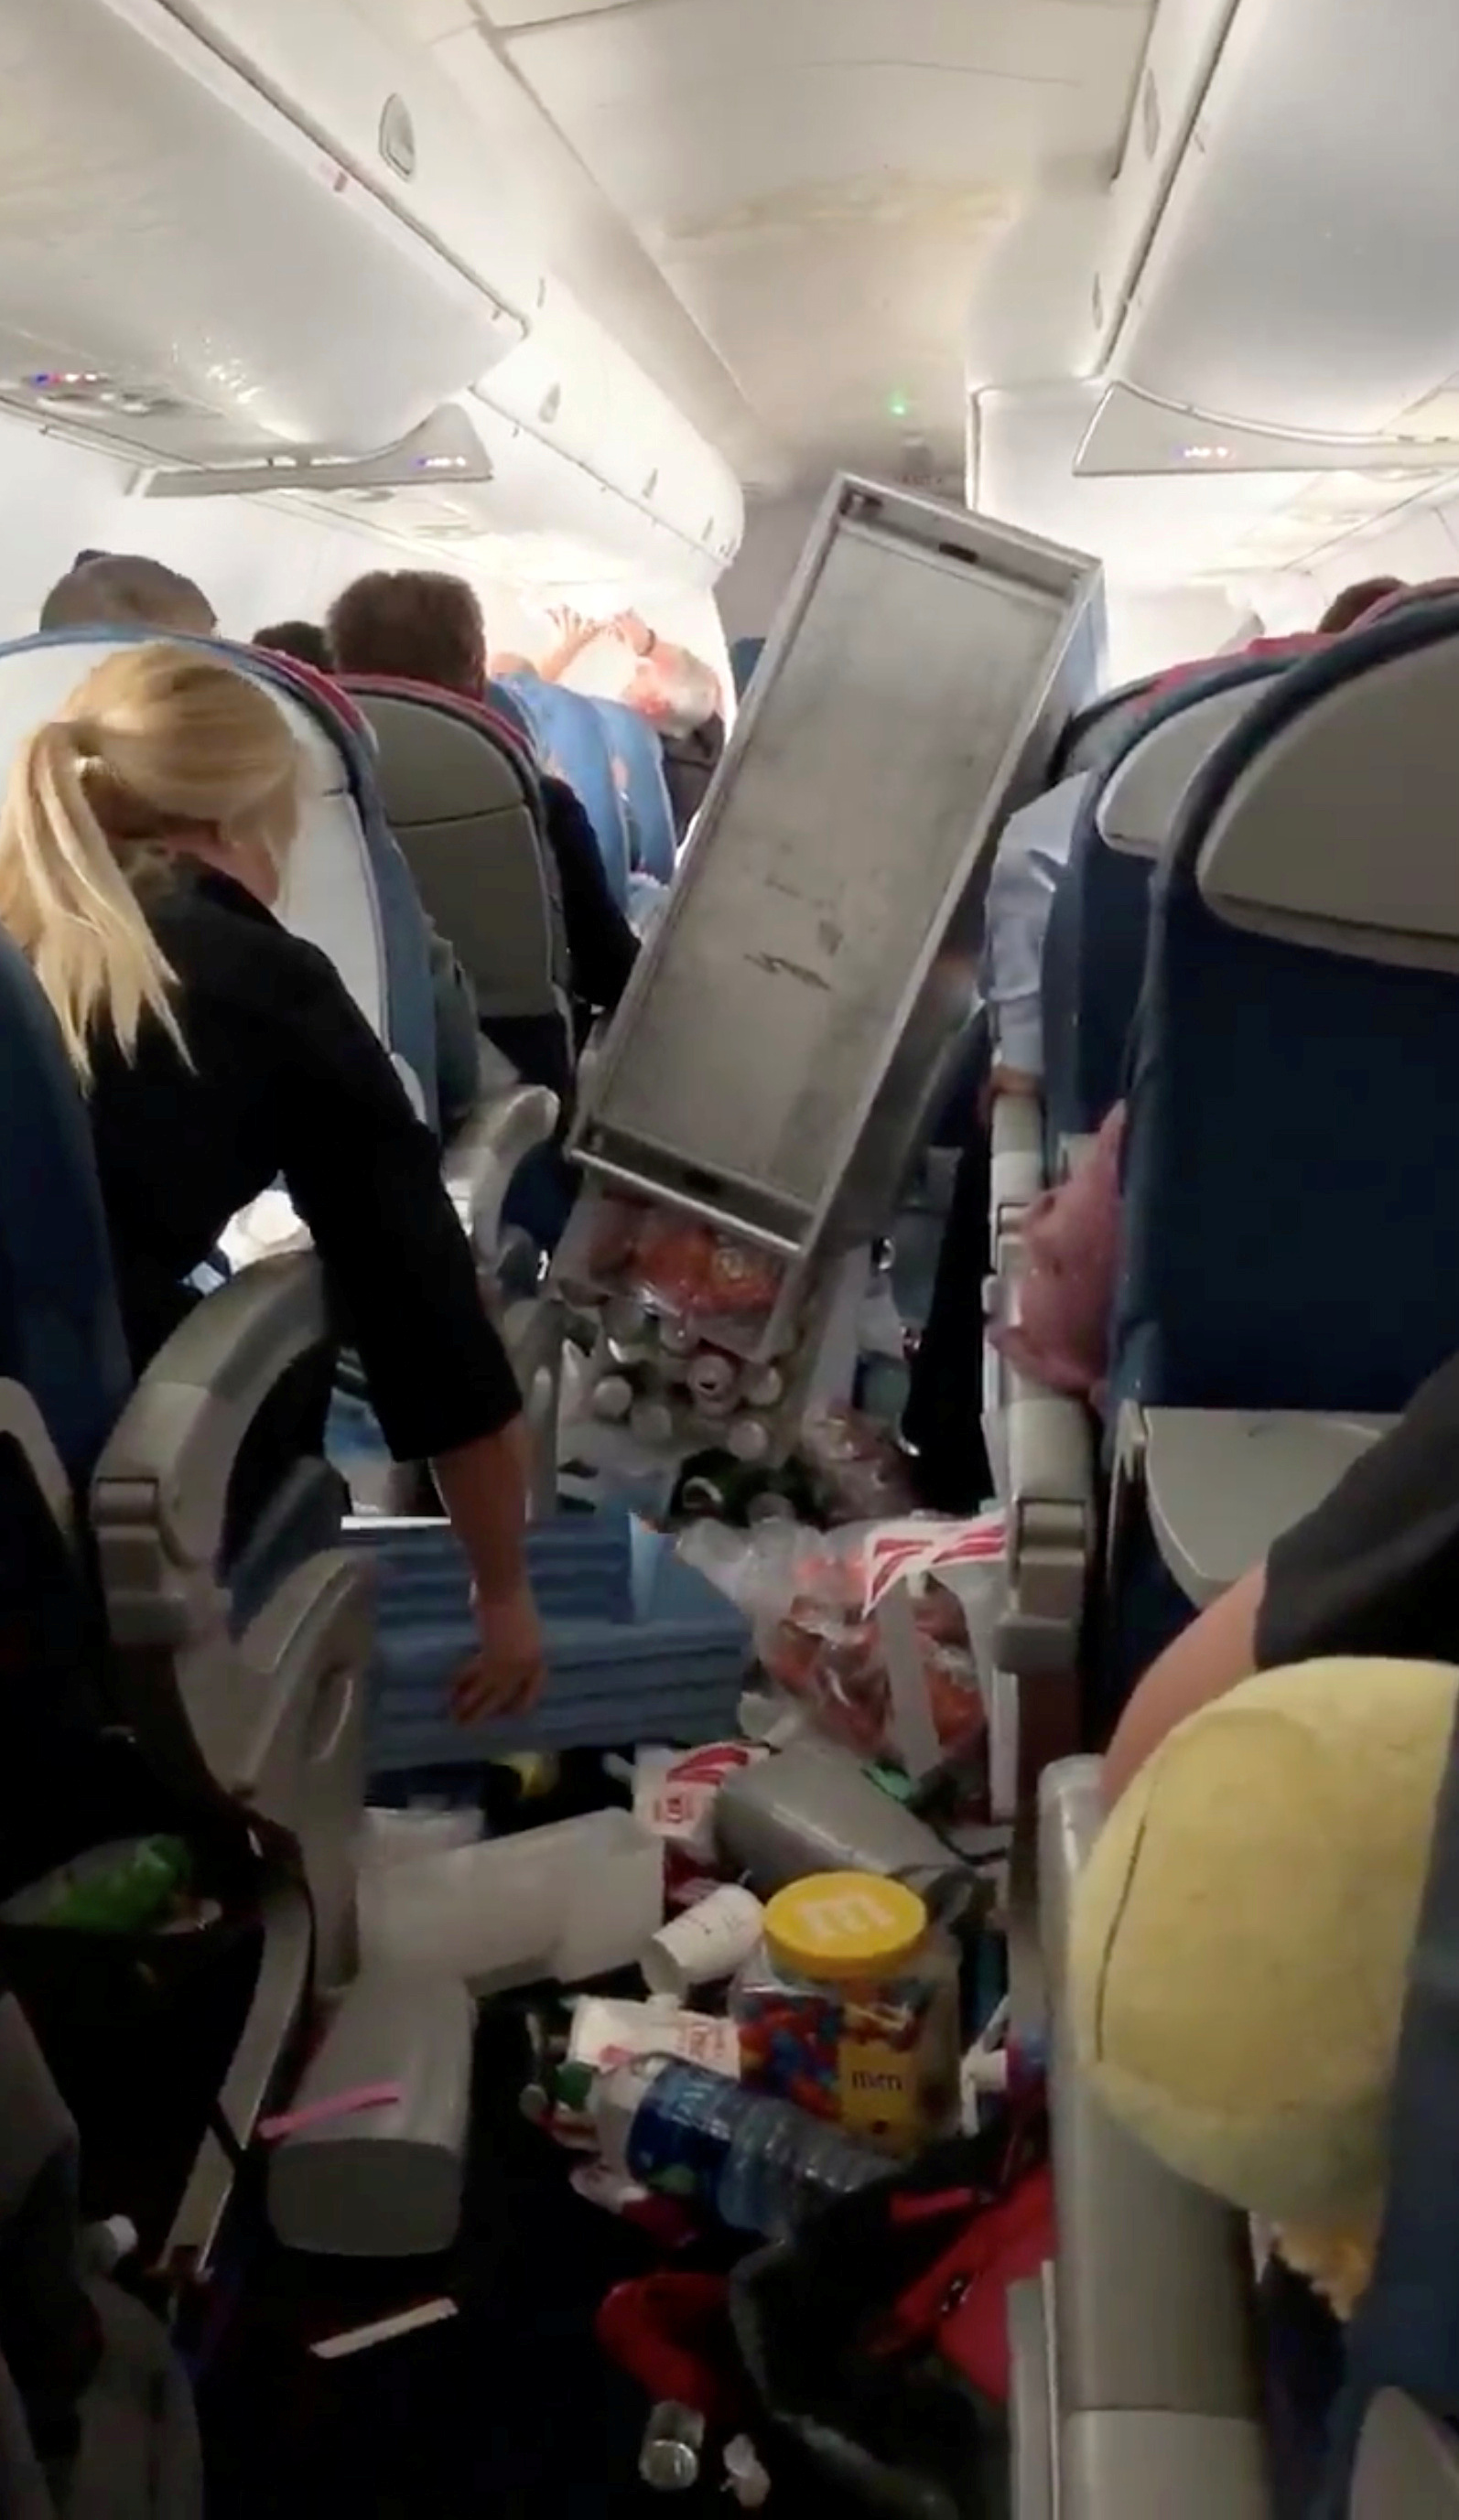 The aftermath of turbulence is seen on Compass Flight 5763 to Seattle, February 13, 2019 in this still picture obtained from social media video by Reuters February 14, 2019. JOE JUSTICE, SCRUM INC./via REUTERS